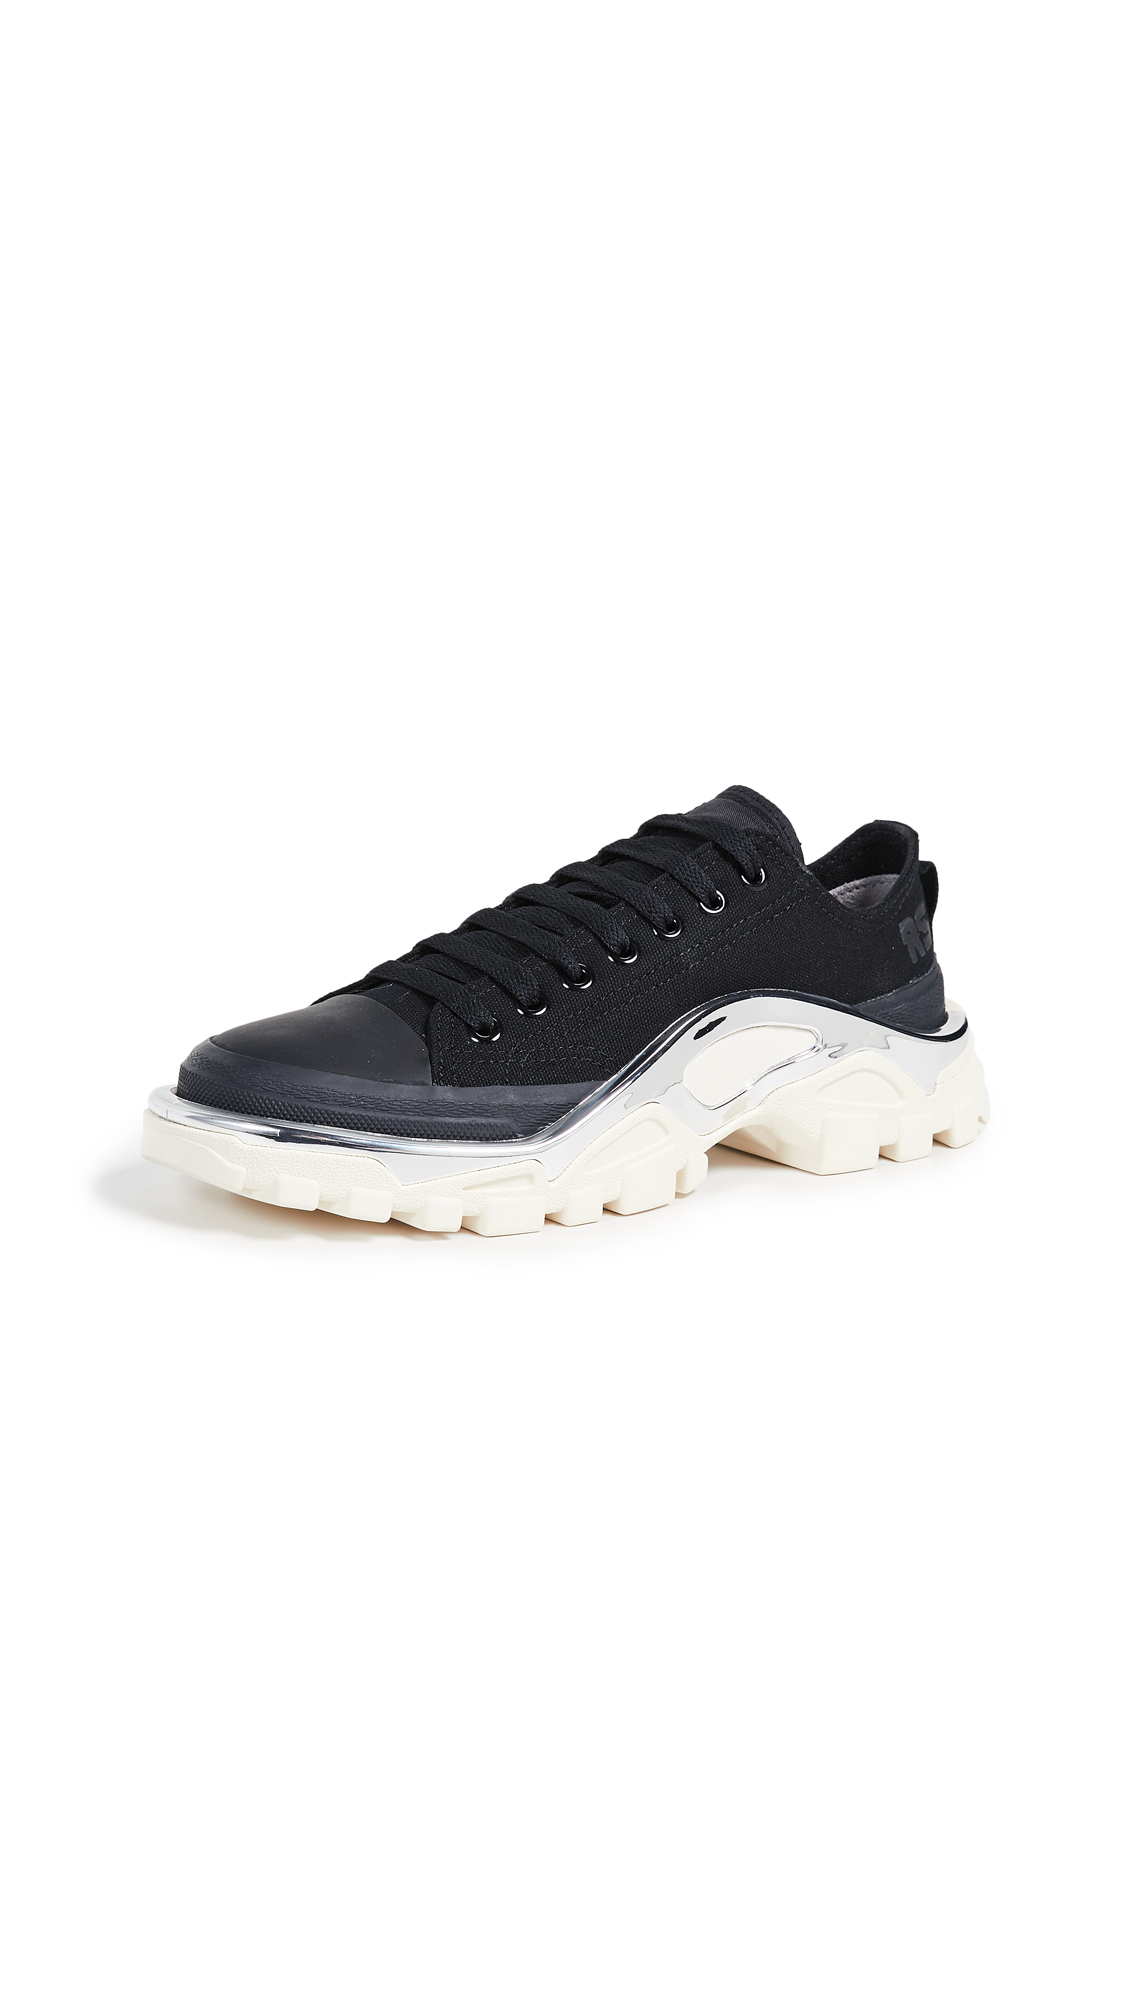 Adidas Raf Simons Detroit Runner Sneakers - Core Black/Core Black/Cream